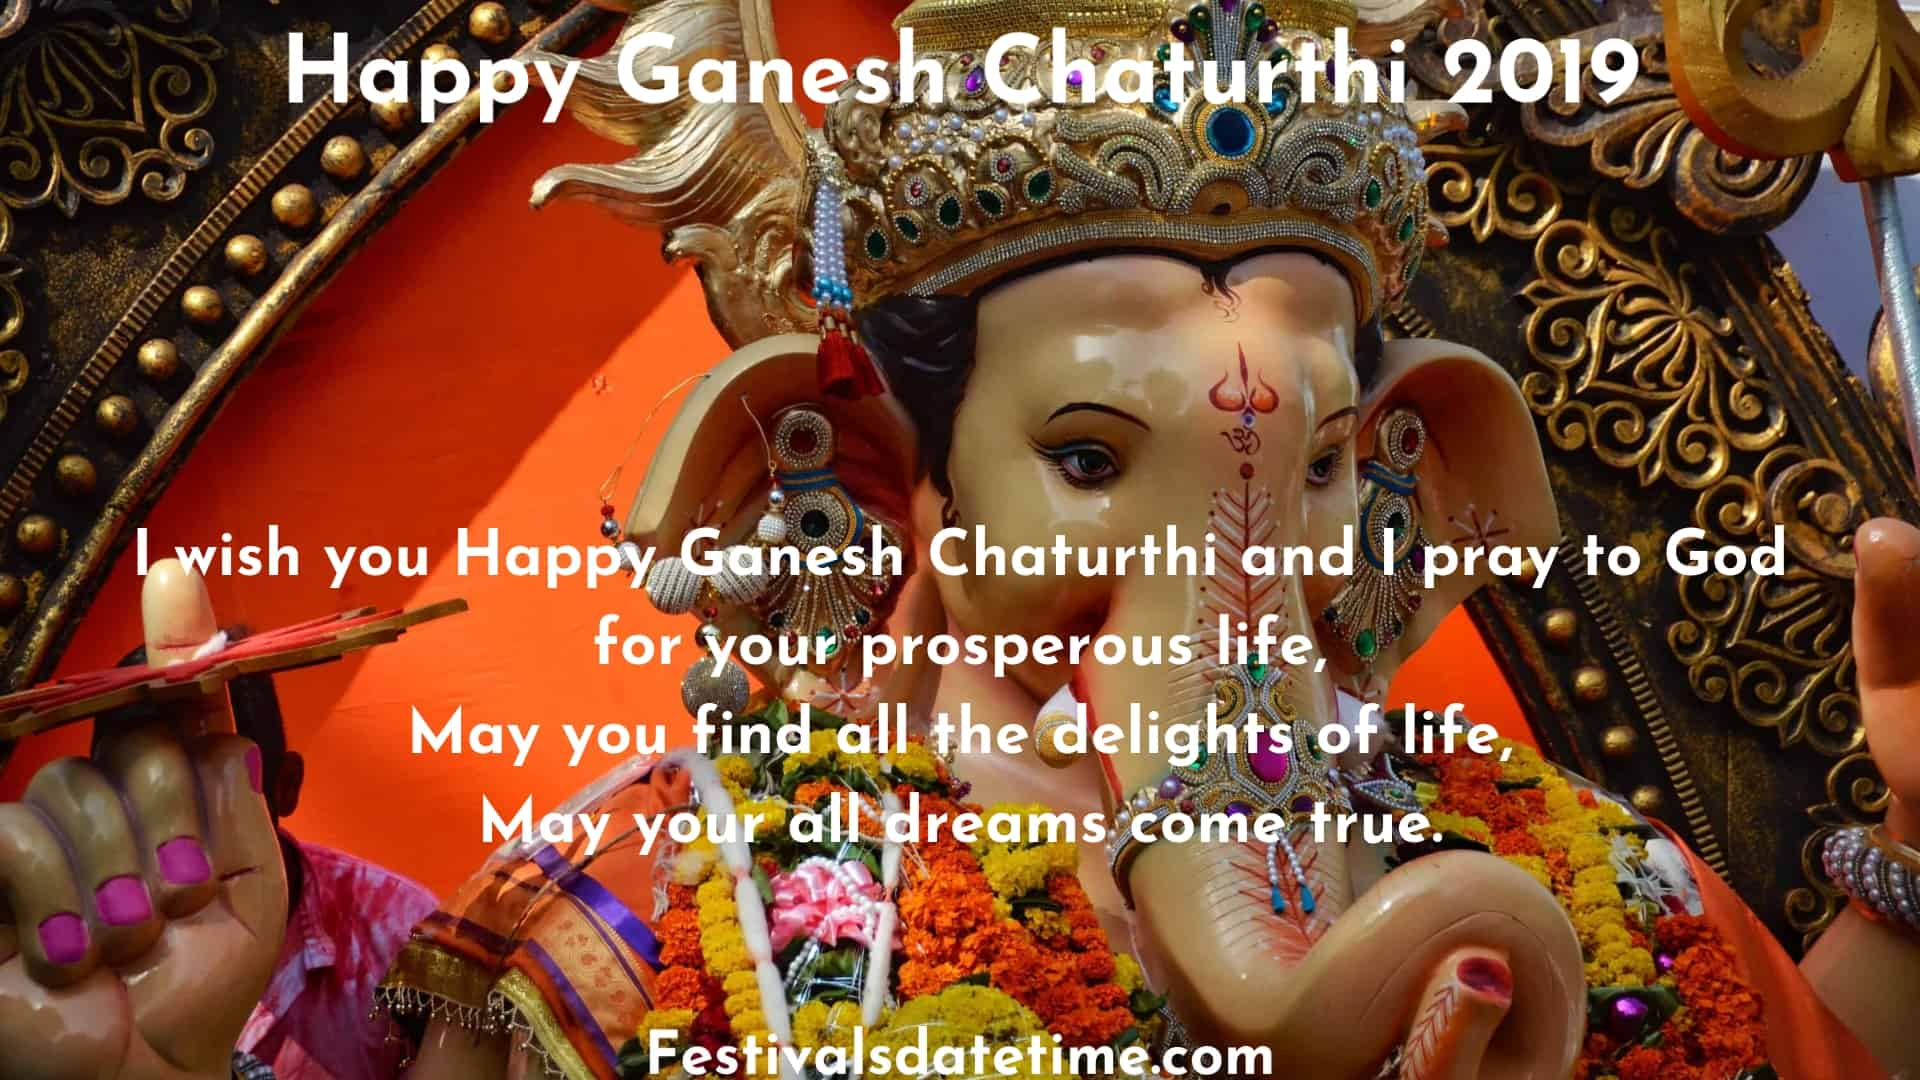 ganesh_chaturthi_images_in_2019